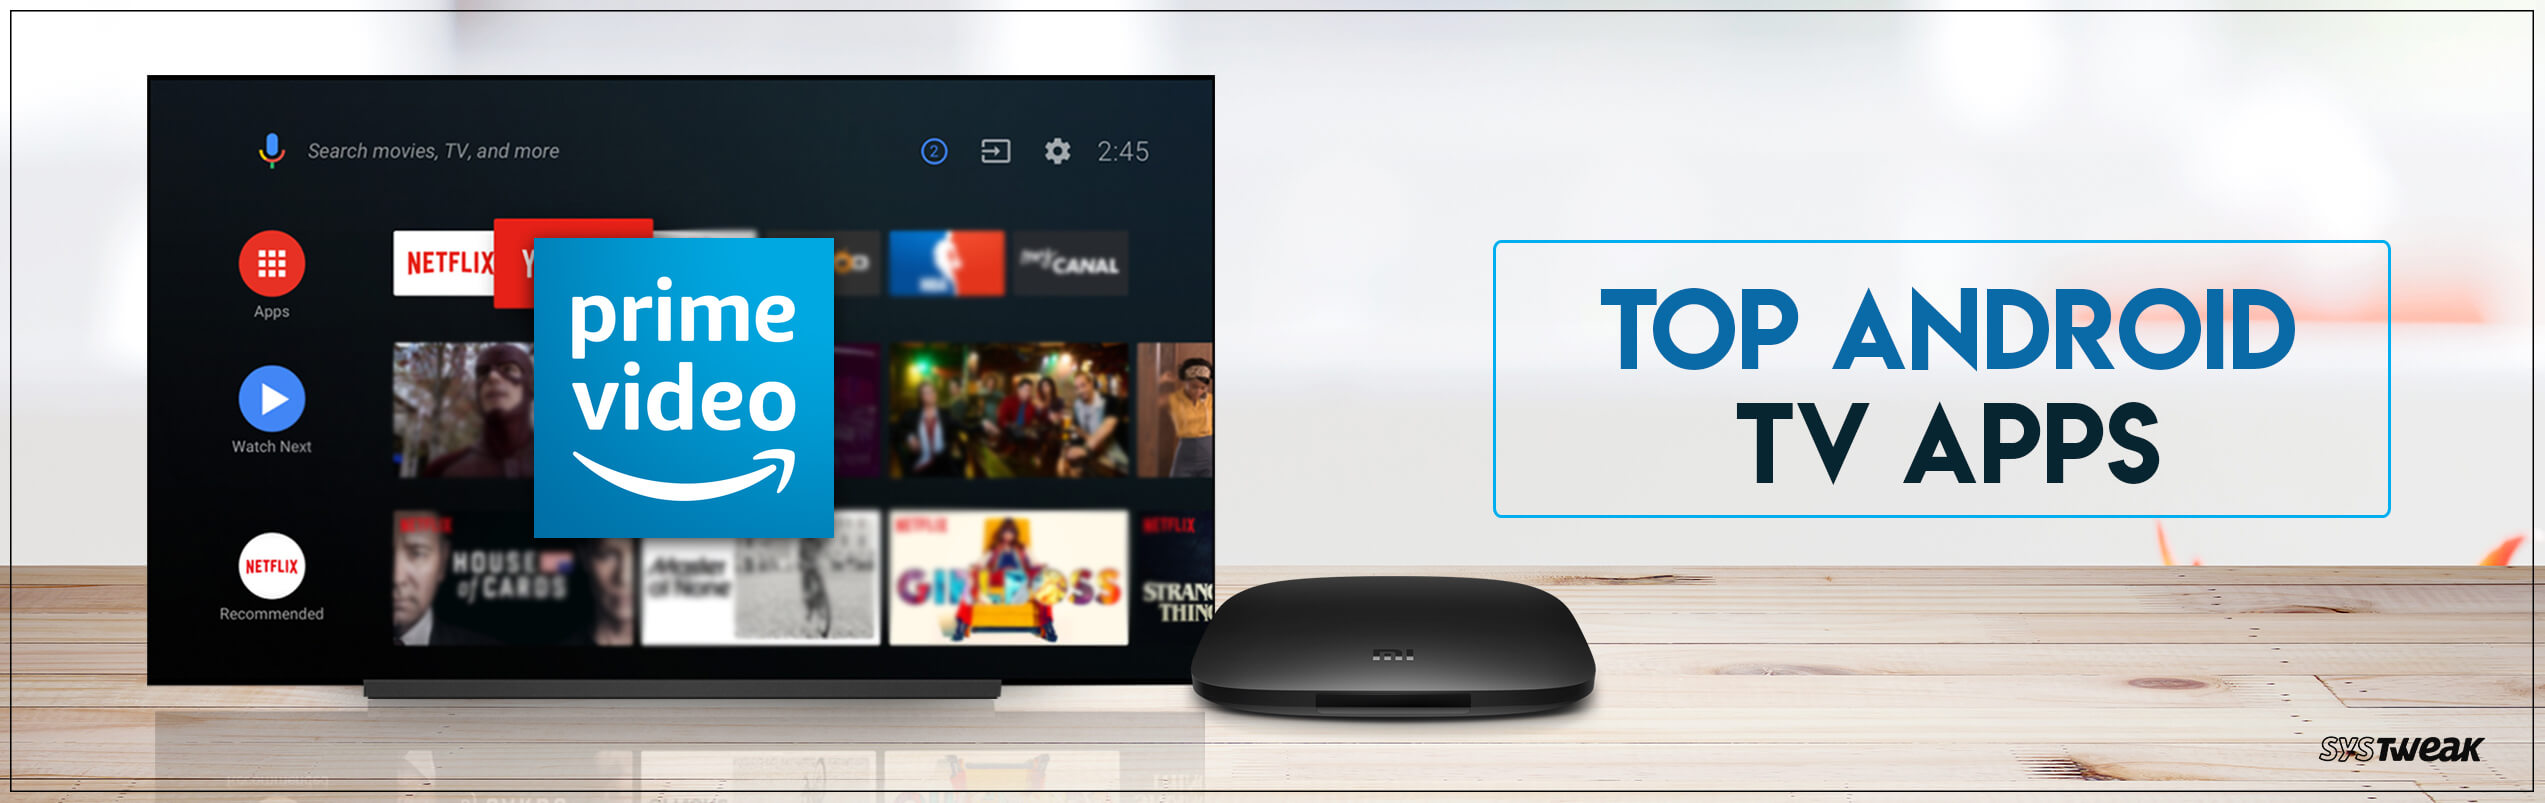 7 Best Android TV Apps To Download For Entertainment